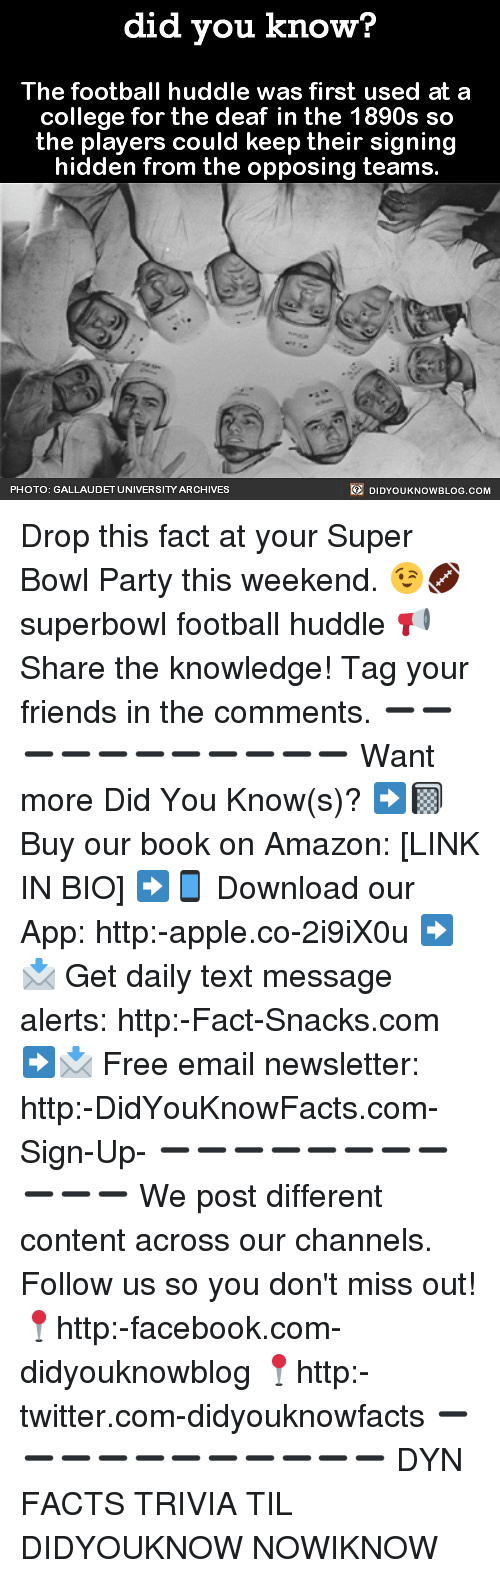 Amazon, Apple, and College: did you know?  The football huddle was first used at a  college for the deaf in the 1890s sco  the players could keep their signing  hidden from the opposing teams.  PHOTO: GALLAUDET UNIVERSITY ARCHIVES  DIDYOUKNOWBLOG.COM Drop this fact at your Super Bowl Party this weekend. 😉🏈 superbowl football huddle 📢 Share the knowledge! Tag your friends in the comments. ➖➖➖➖➖➖➖➖➖➖➖ Want more Did You Know(s)? ➡📓 Buy our book on Amazon: [LINK IN BIO] ➡📱 Download our App: http:-apple.co-2i9iX0u ➡📩 Get daily text message alerts: http:-Fact-Snacks.com ➡📩 Free email newsletter: http:-DidYouKnowFacts.com-Sign-Up- ➖➖➖➖➖➖➖➖➖➖➖ We post different content across our channels. Follow us so you don't miss out! 📍http:-facebook.com-didyouknowblog 📍http:-twitter.com-didyouknowfacts ➖➖➖➖➖➖➖➖➖➖➖ DYN FACTS TRIVIA TIL DIDYOUKNOW NOWIKNOW